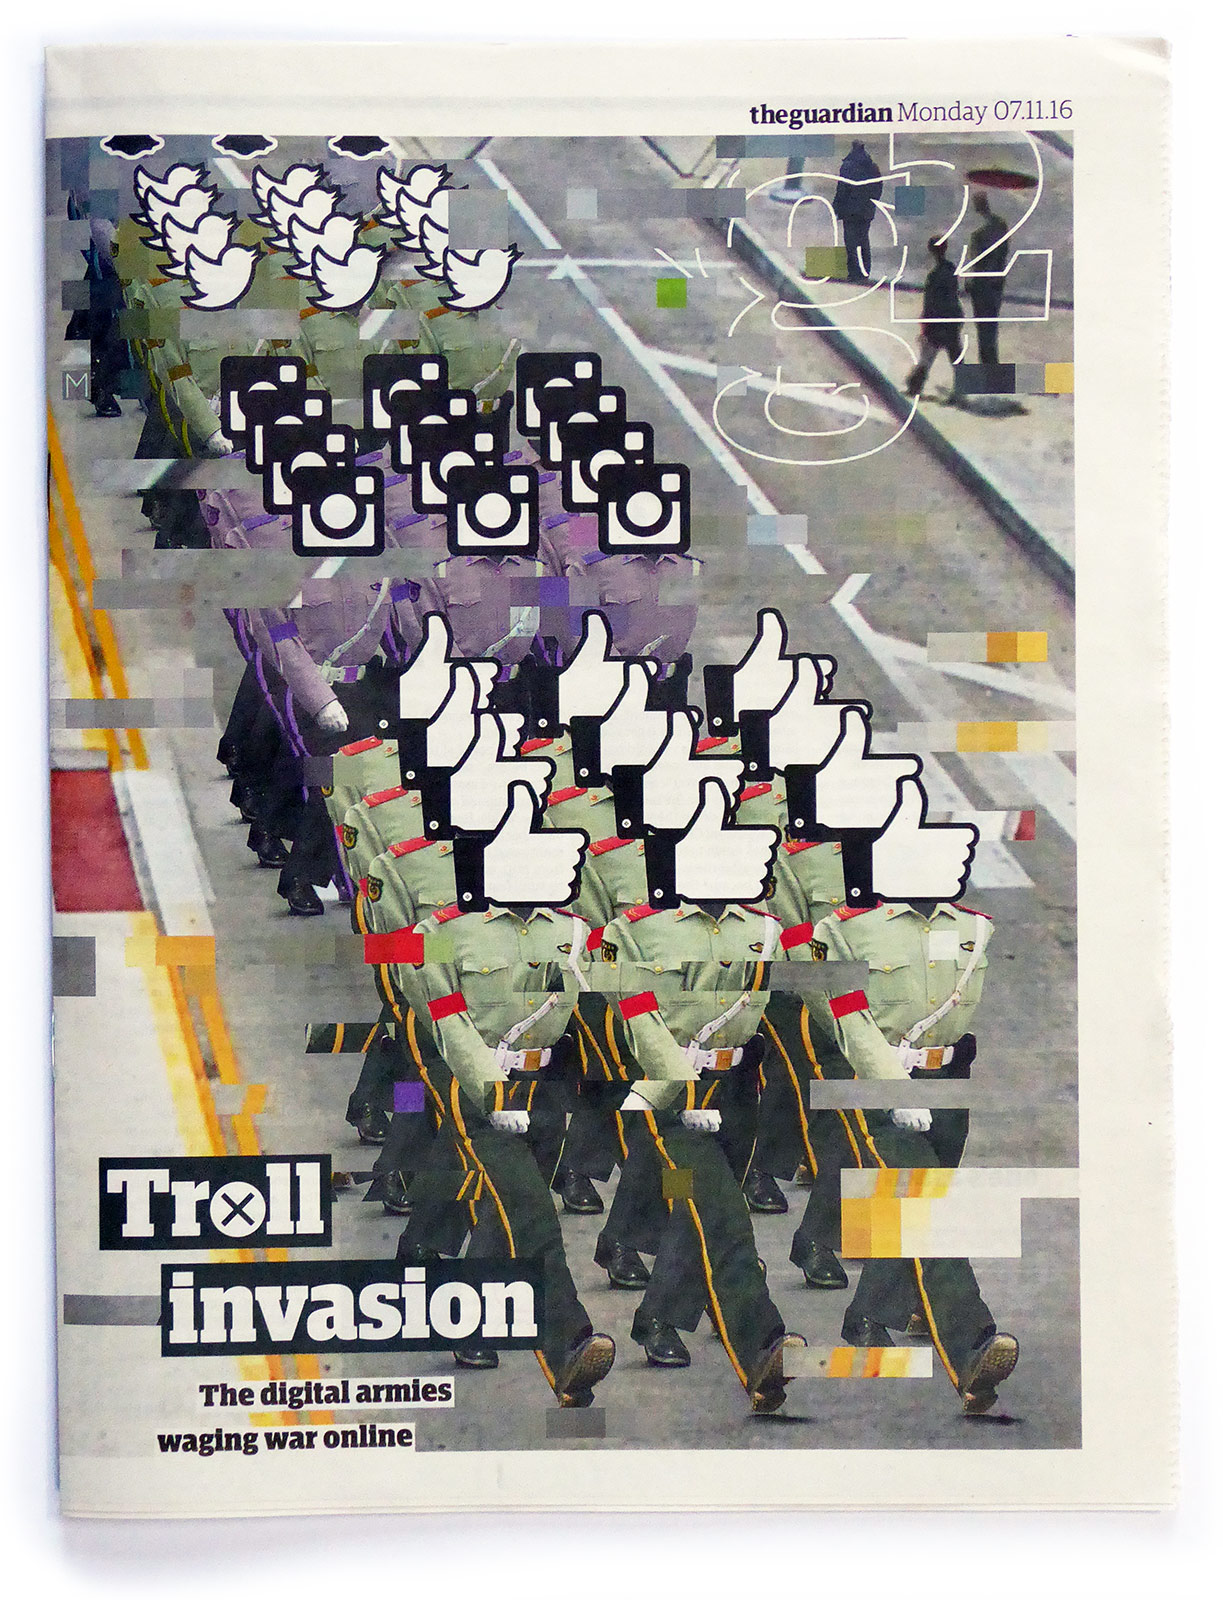 Social Media March  illustration by Joe Magee for The Guardian